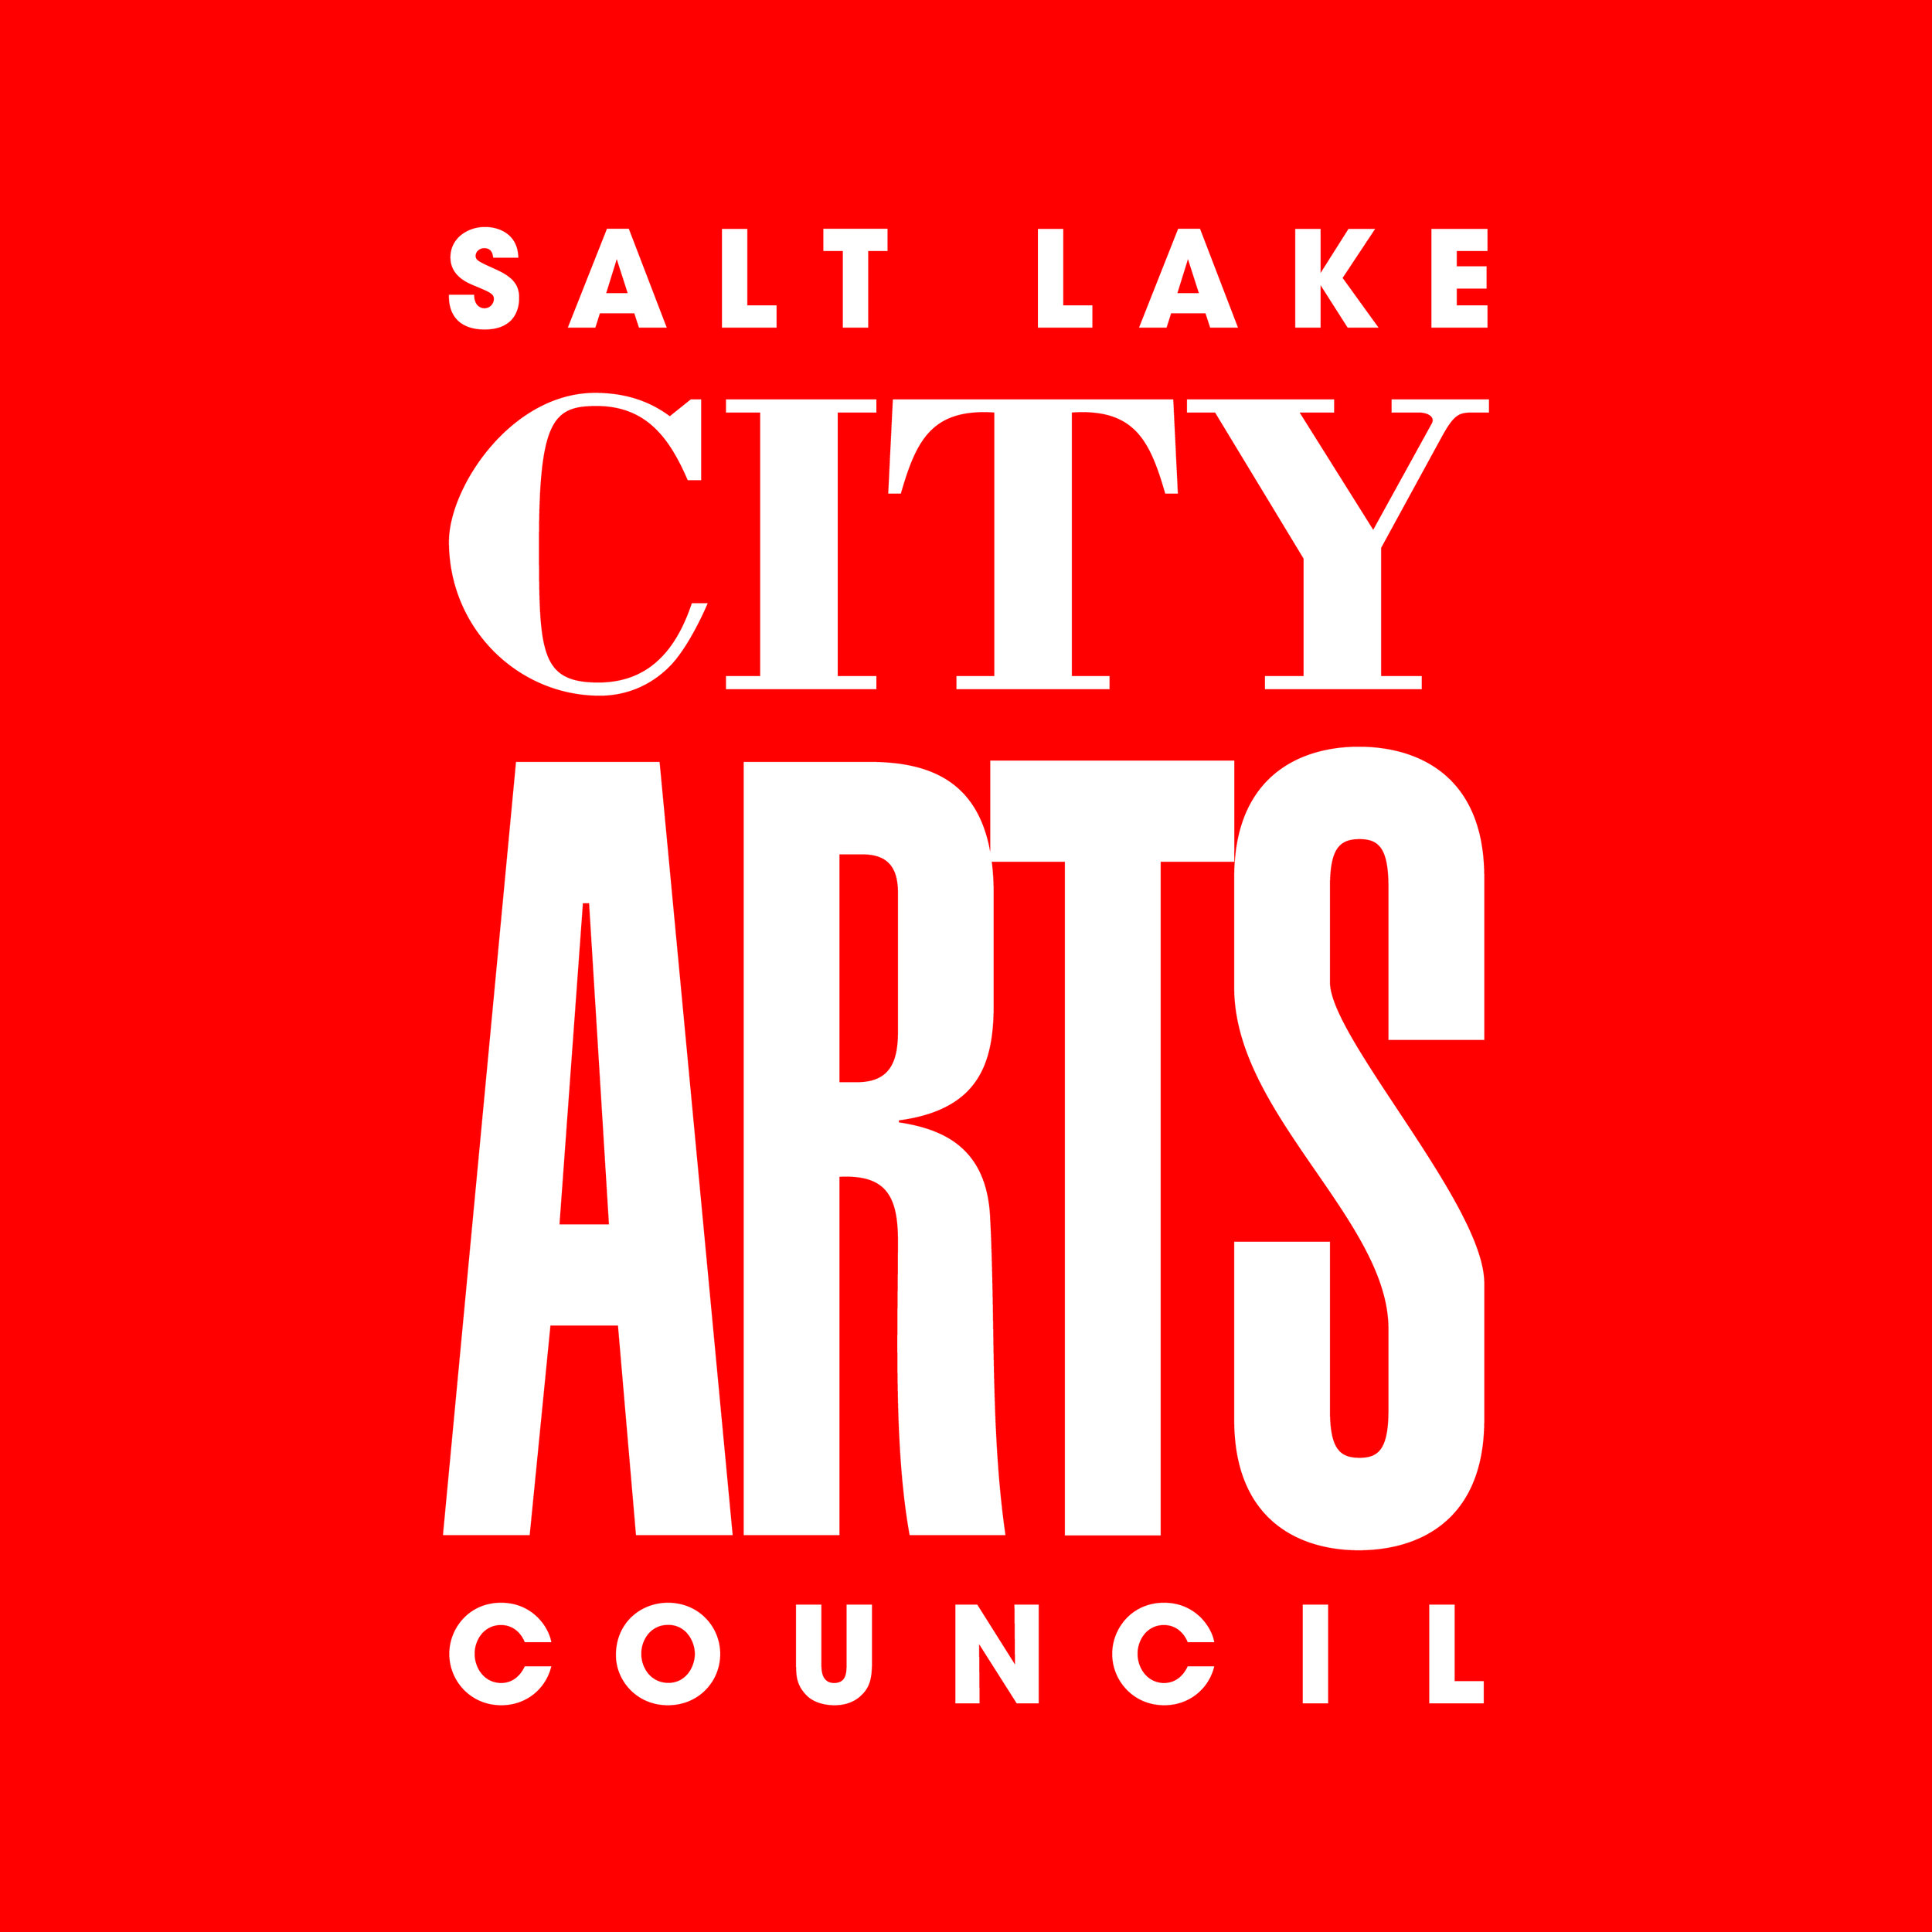 SLC Arts Council.jpg